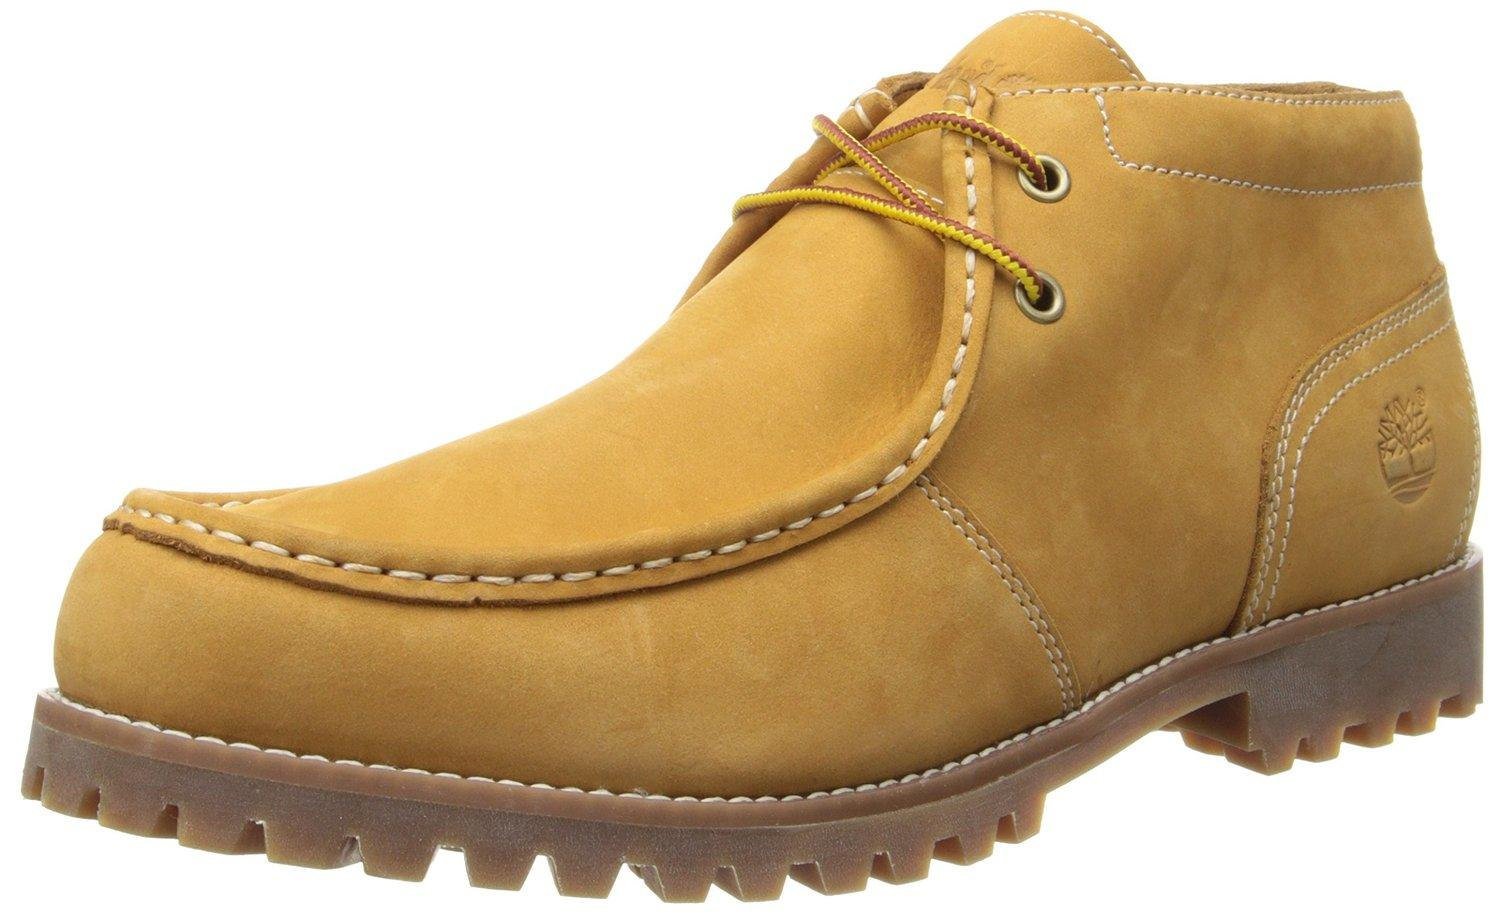 Timberland Men's Oakwell Moc-Toe Chukka Boot